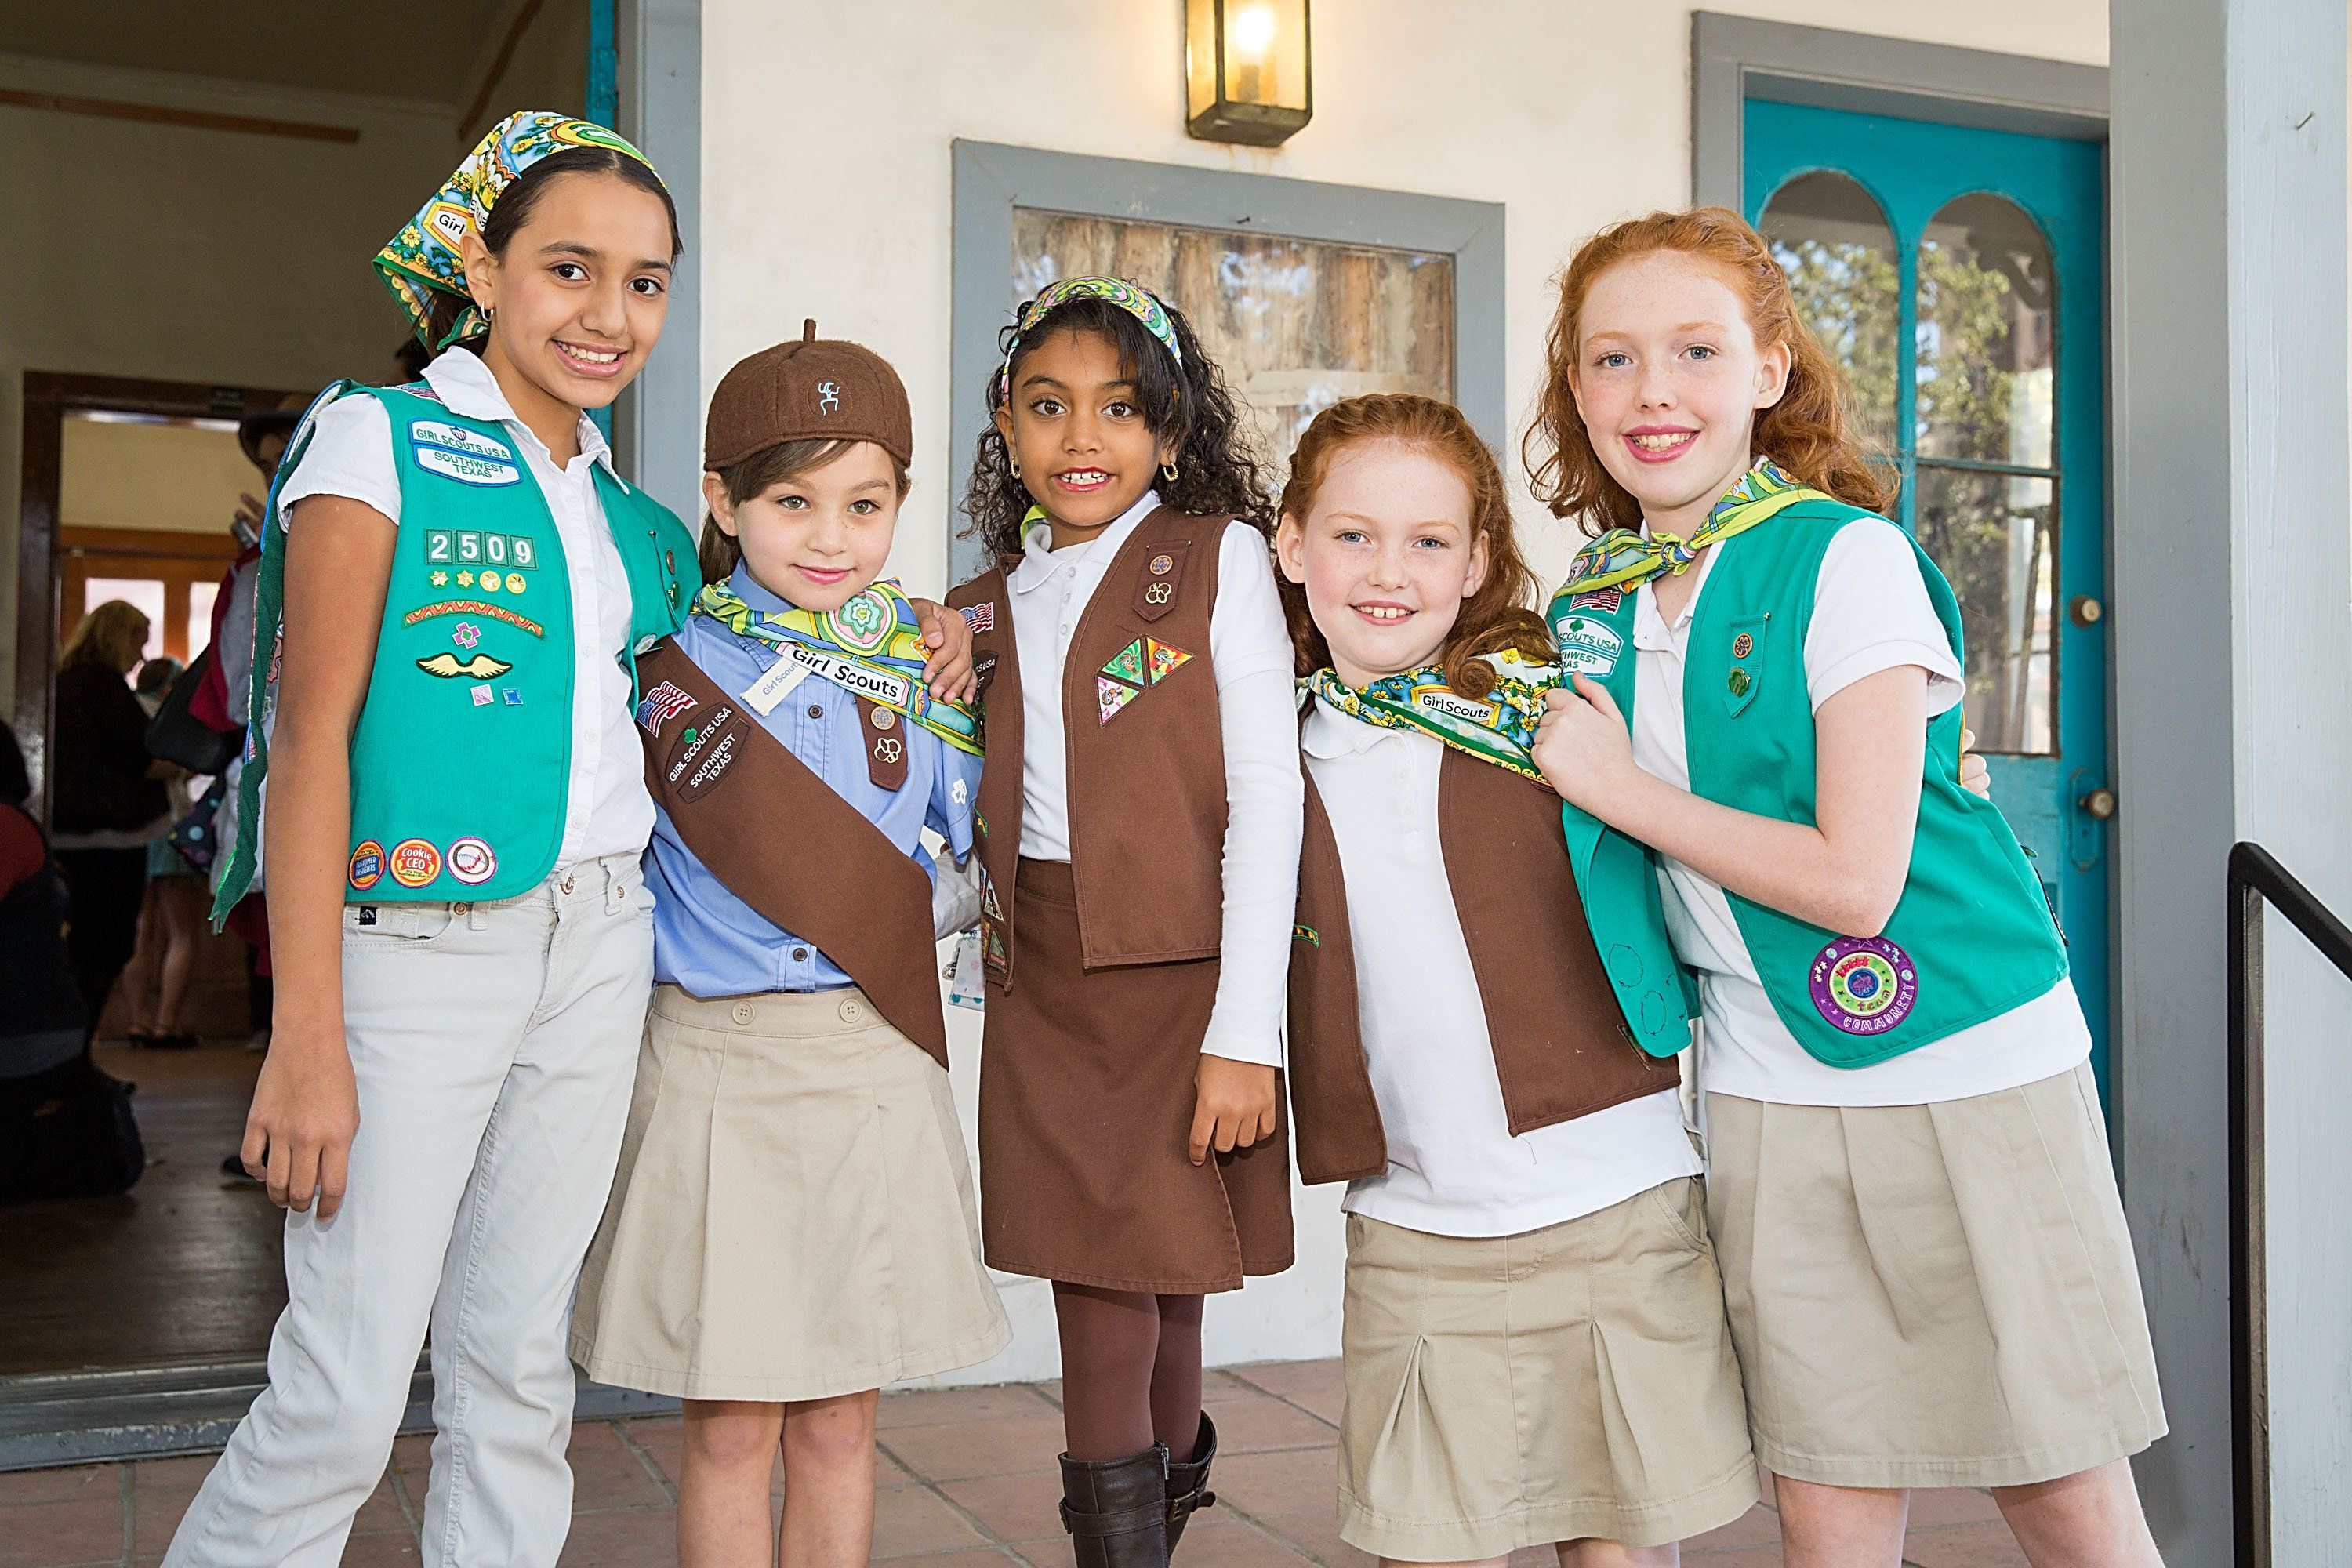 Are these young girls being indoctrinated to support abortion and gay rights? The St. Louis Archdiocese is worriedthey